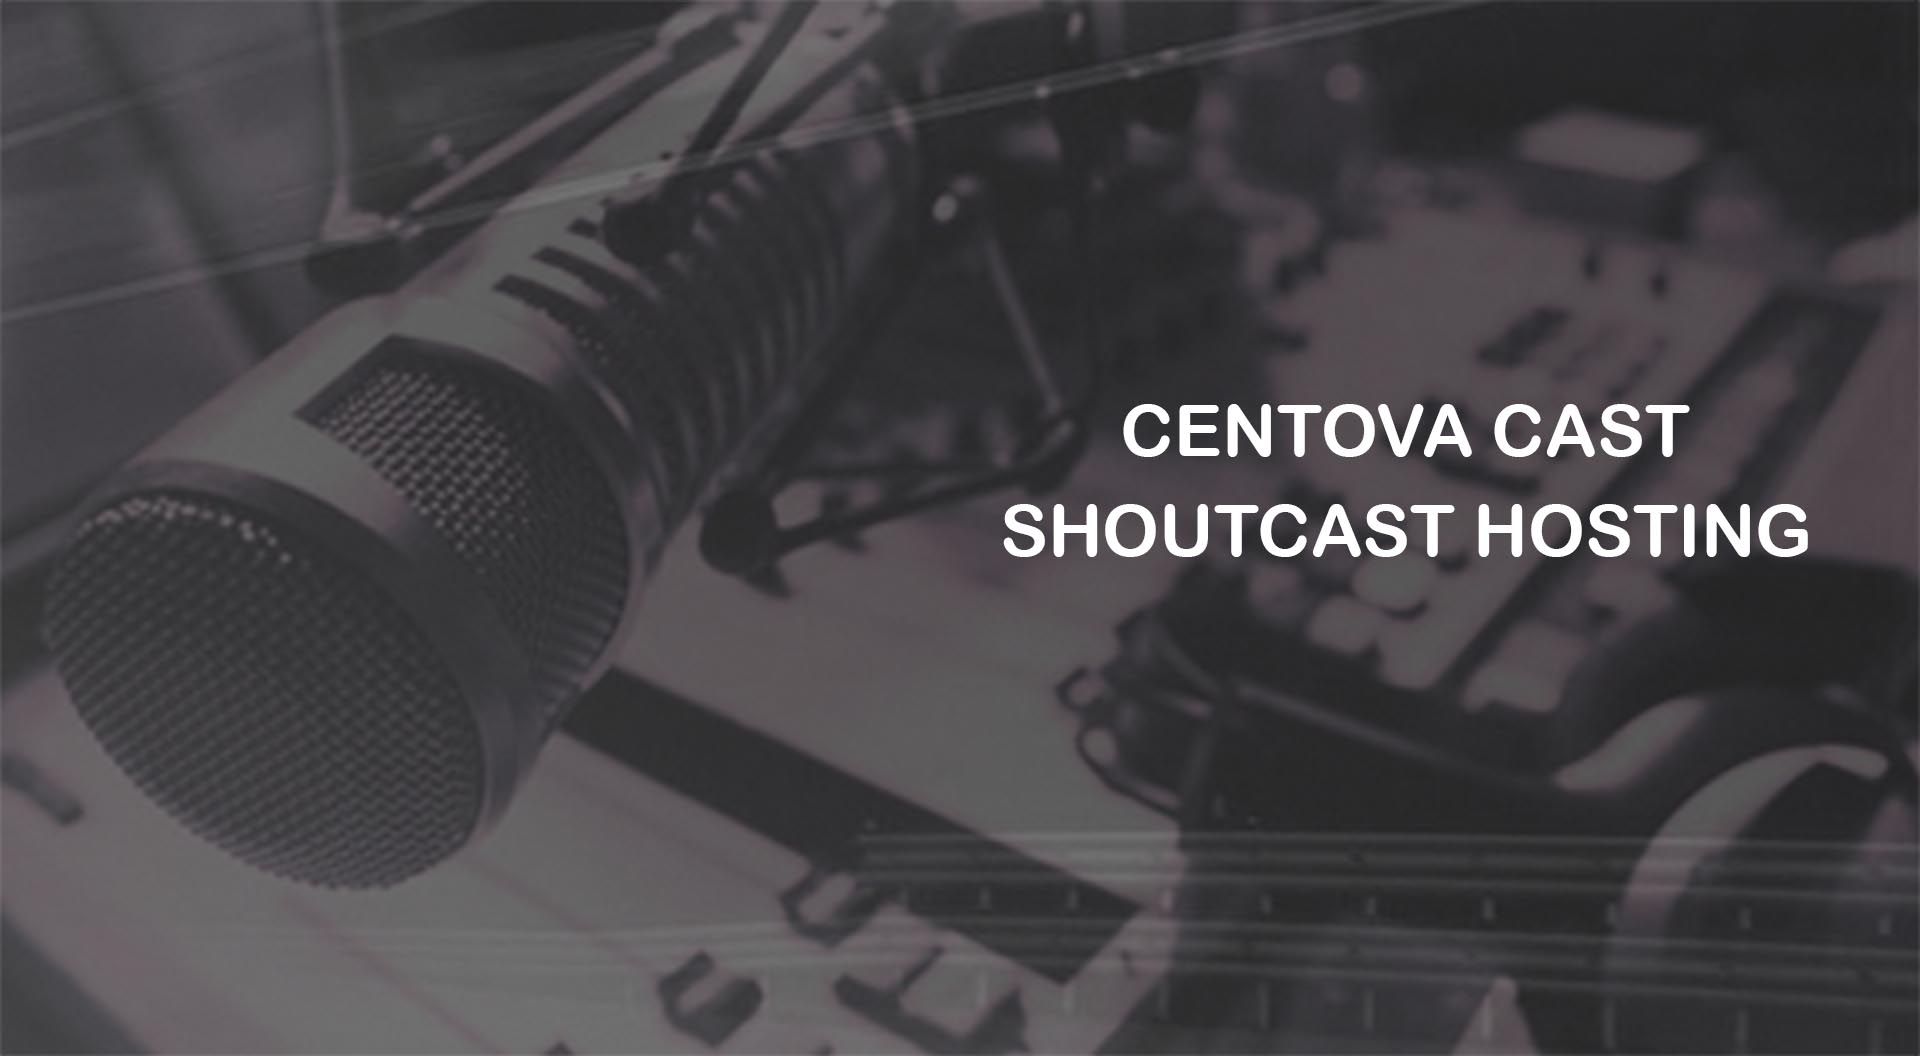 CENTOVA CAST SHOUTCAST SERVER